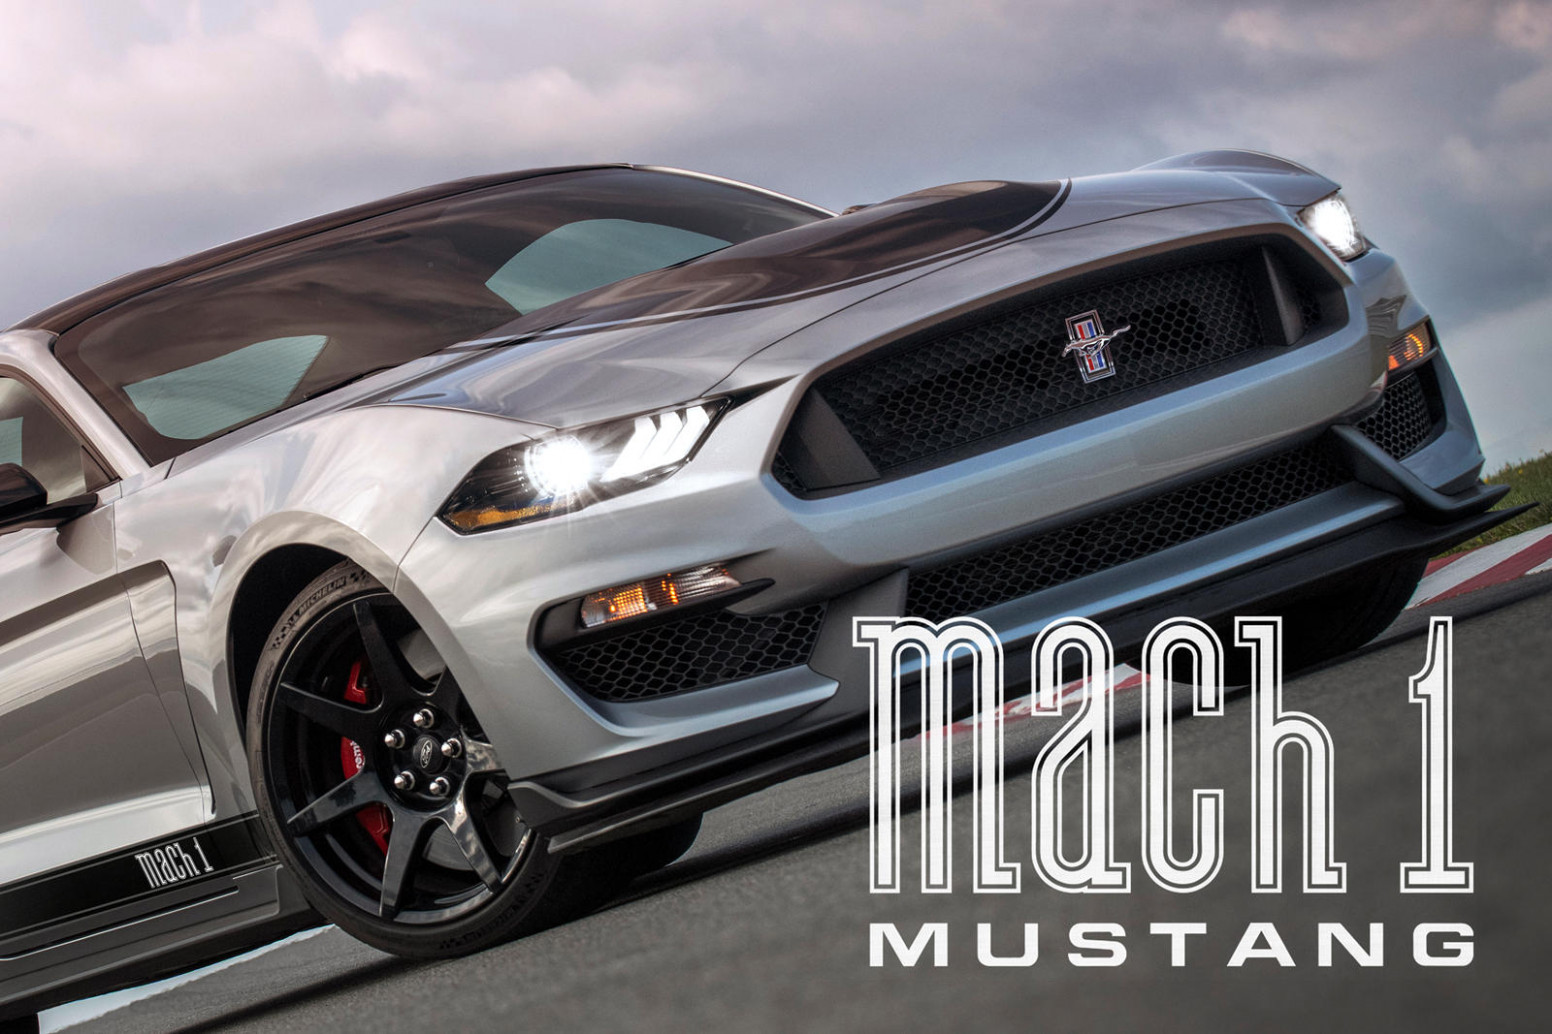 Redesign and Concept 2022 Mustang Mach